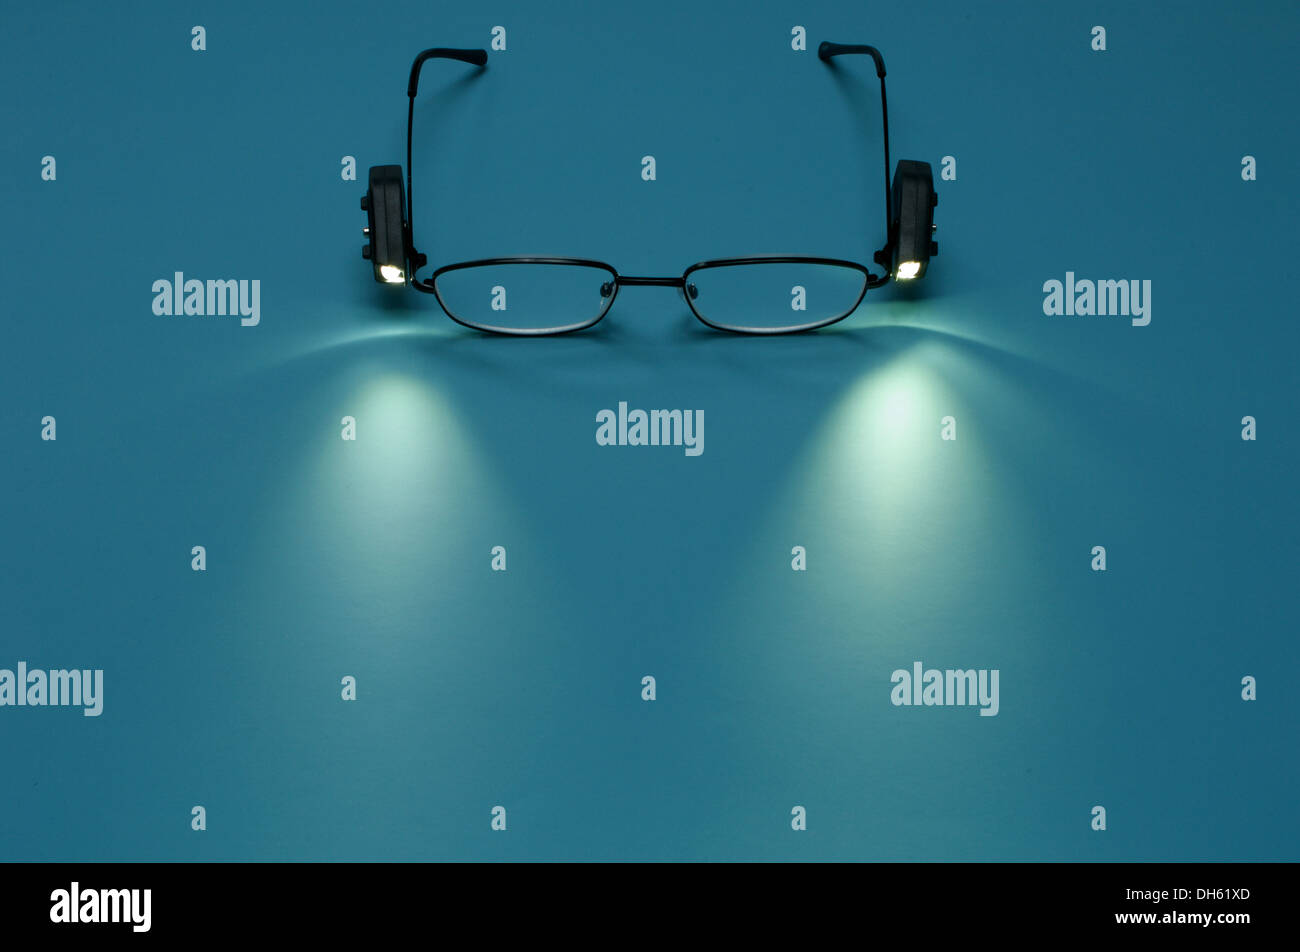 A pair of reading glasses with small attached lights - Stock Image